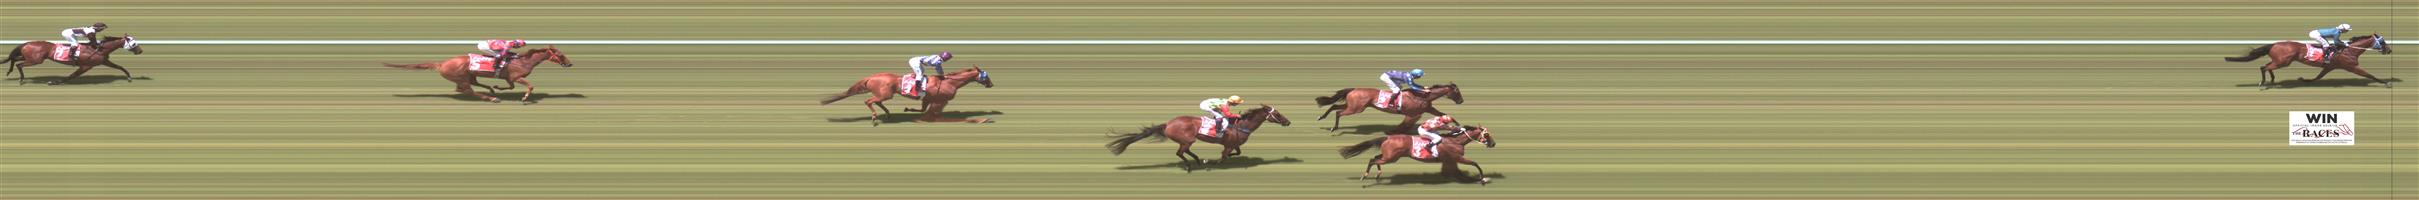 MORPHETTVILLE Race 1 No. 2 Azurite @ $2.60 (1.5 UNITS WIN)   Result :  3rd  at SP $2.30. Not happy with slow speed and made mid race move to sit outside the leader. On the turn, favourite kicked clear and Azurite couldn't match it and tired late to finish a close third. Outcome -1.50 Units.